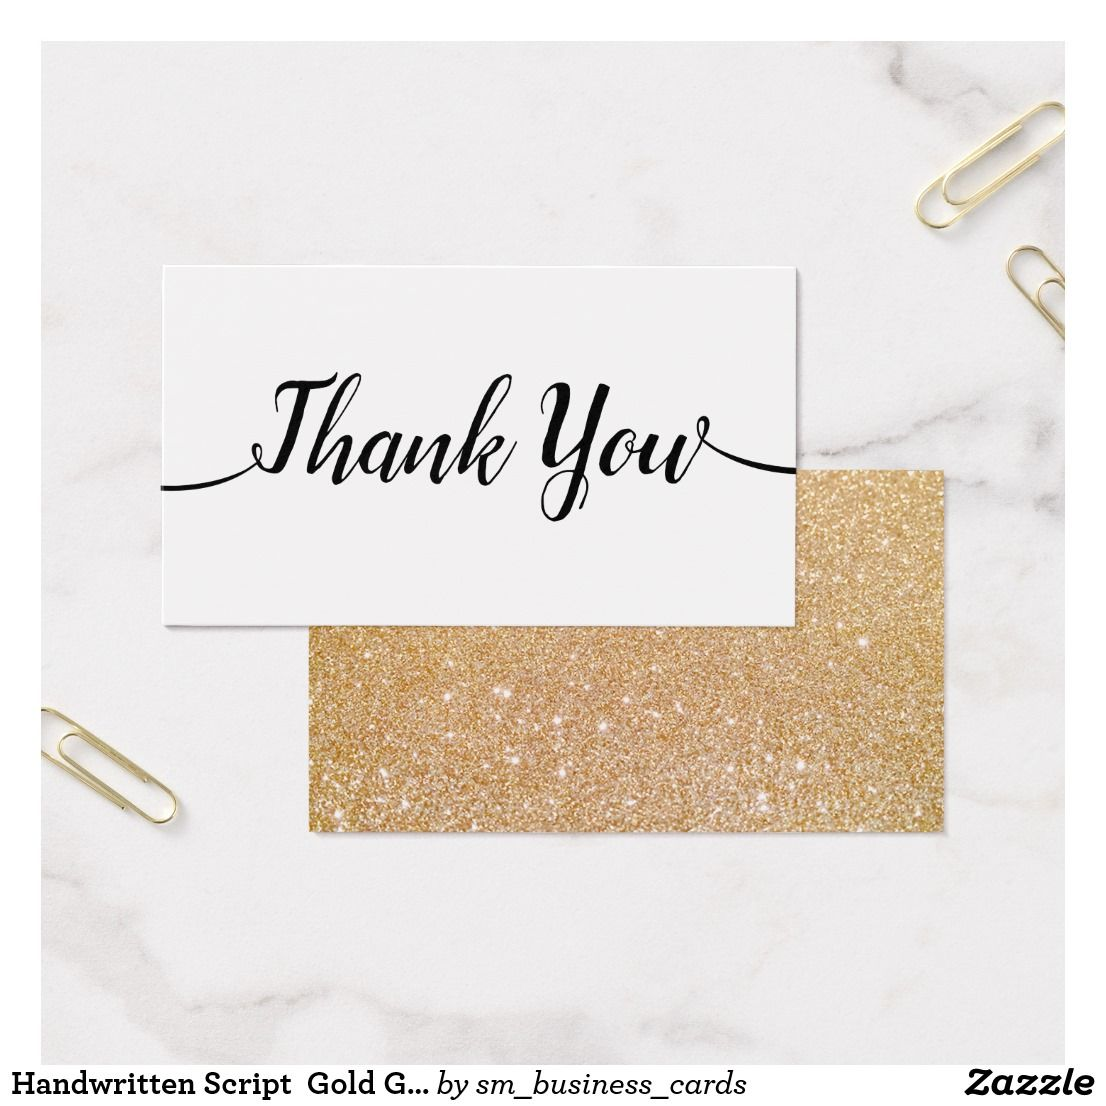 Handwritten Script Gold Glitter Thank You Business Card | Business ...